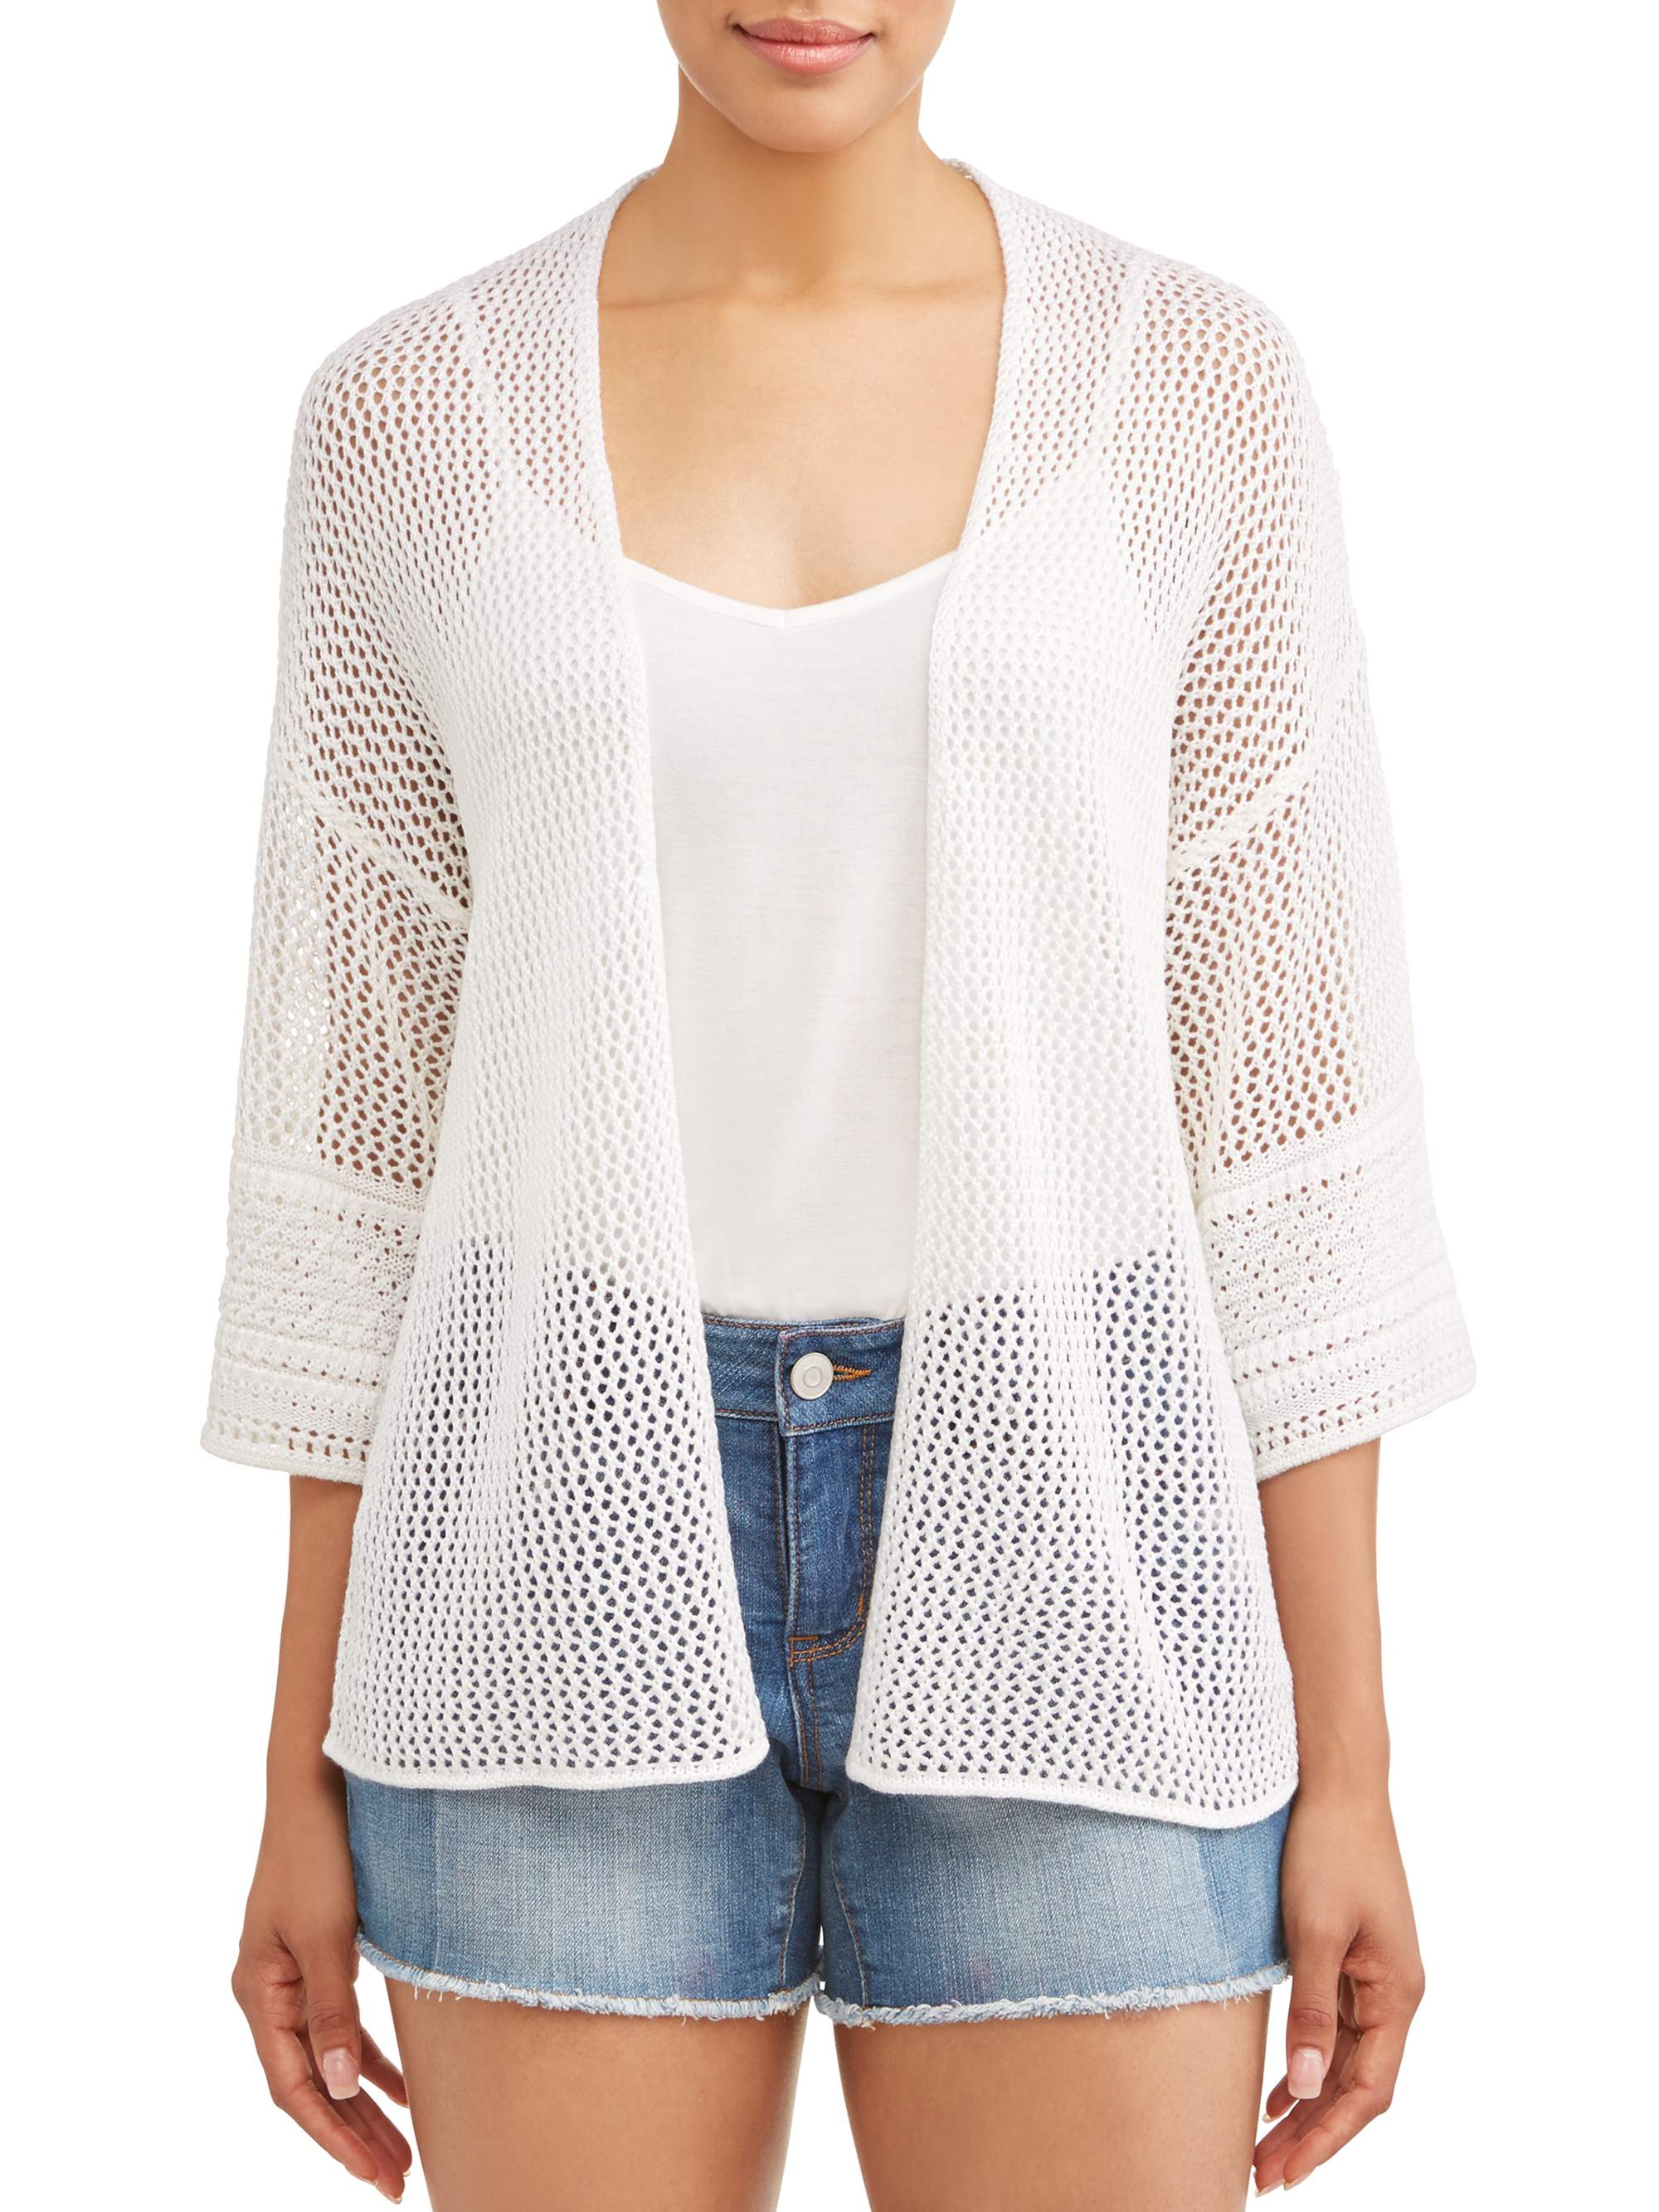 Women's Loose Sleeve Open Cardigan